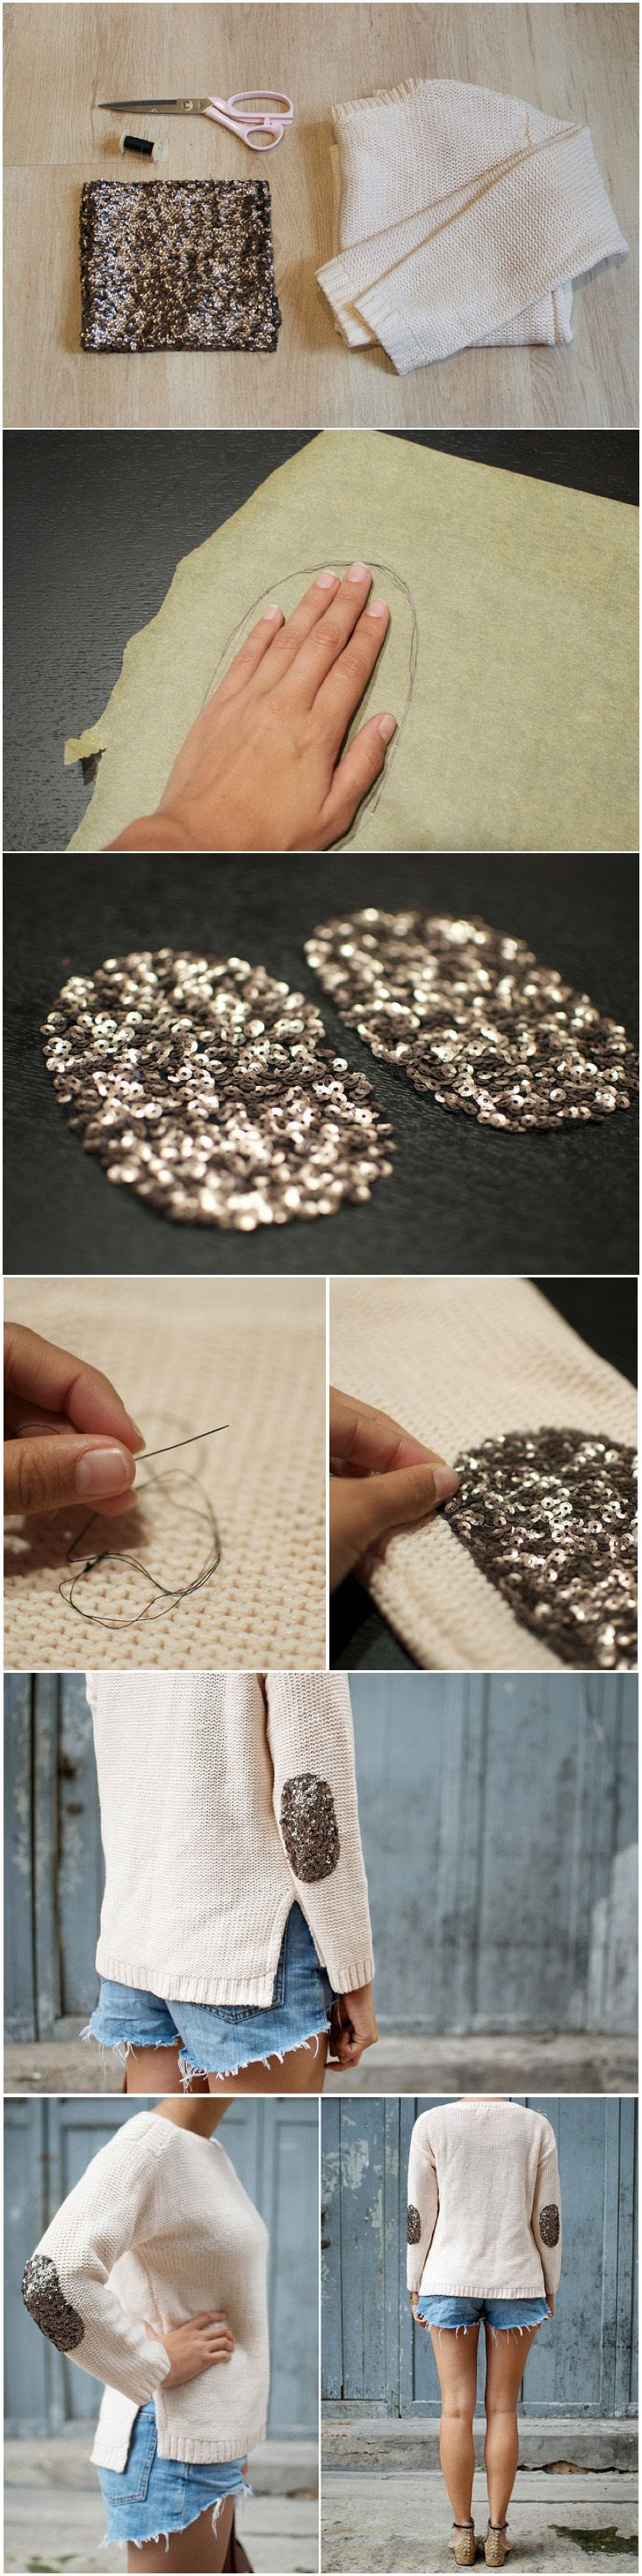 sequin elbow patches. From a pair & a spare. ( http://apairandasparediy.com/2012/10/diy-sequin-elbow-patch-sweater.html )